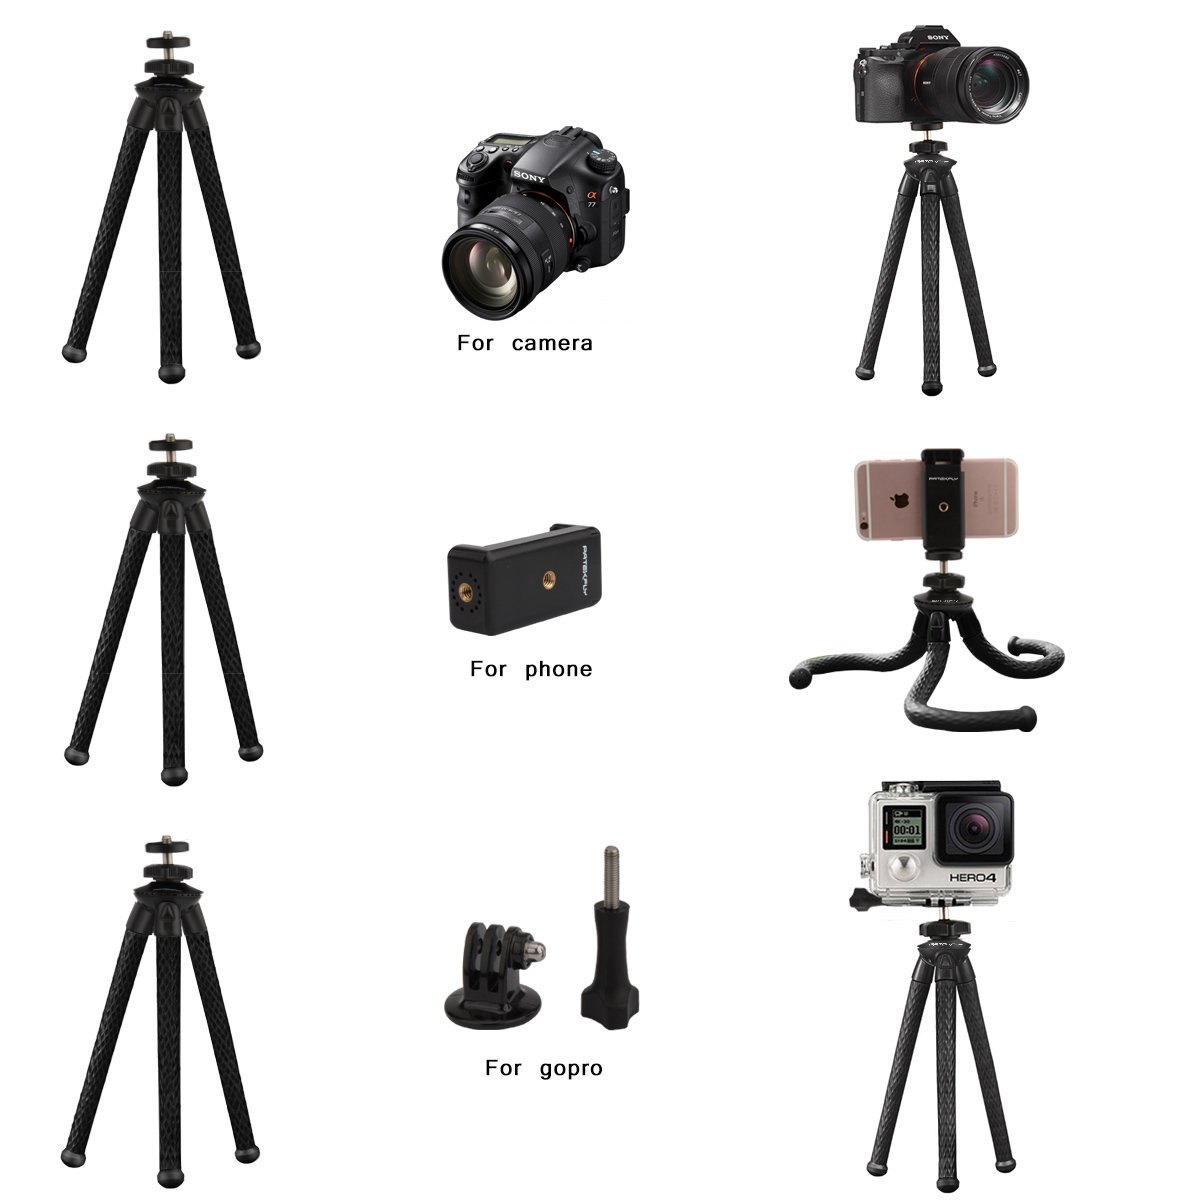 Camera//Phone Tripod,Patekfly 12 Inch Flexible Camera Tripod for GoPro//Canon//Nikon//Sony DSLR Cam//Gopro Action Cam Phone Tripod Stand with Cell Phone Holder Clip for iPhone//Android Phone 3 in 1